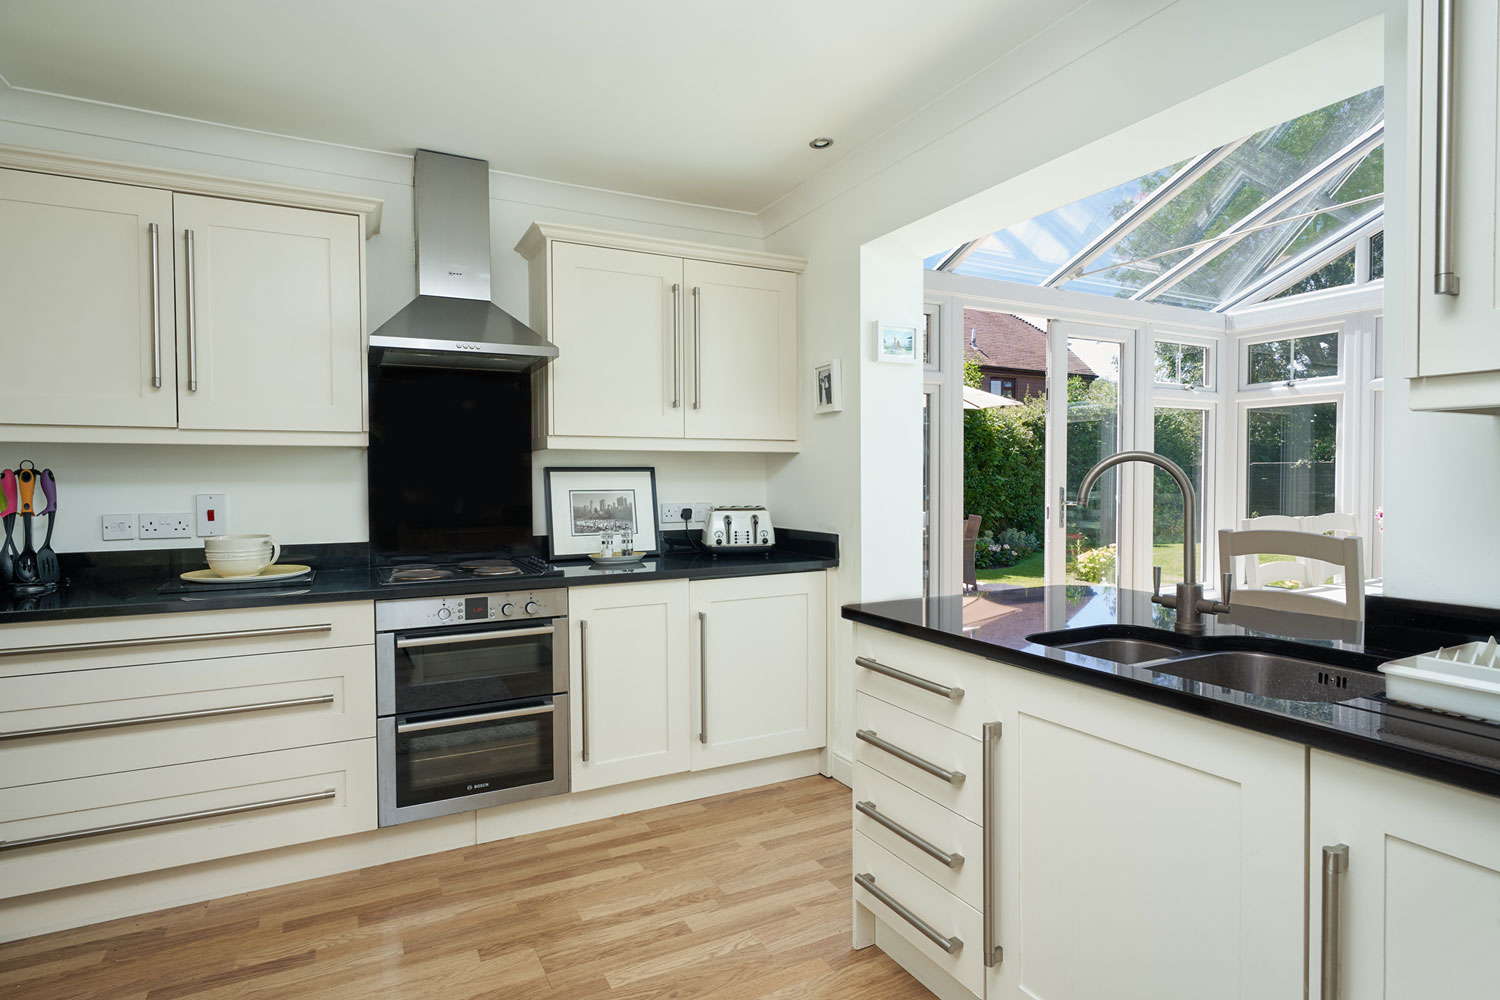 Property & Interiors Photography - Adam Hillier Photography